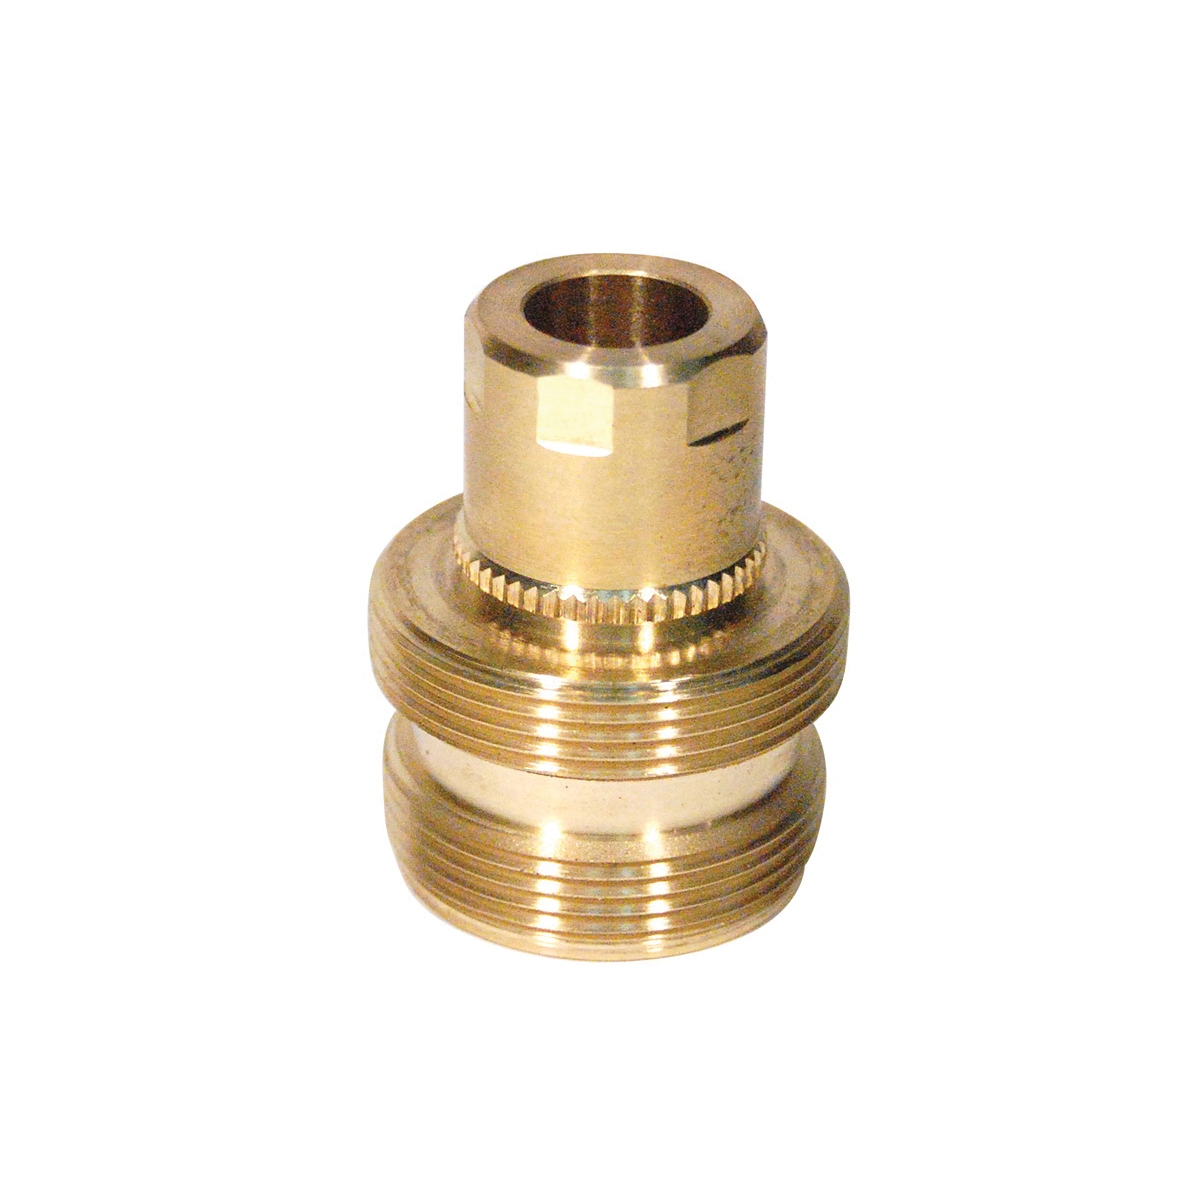 Toto® 6BU4054 Thermo Valve Retainer Nut, For Use With: TSTA/TSTD Thermostatic Mixing Valve